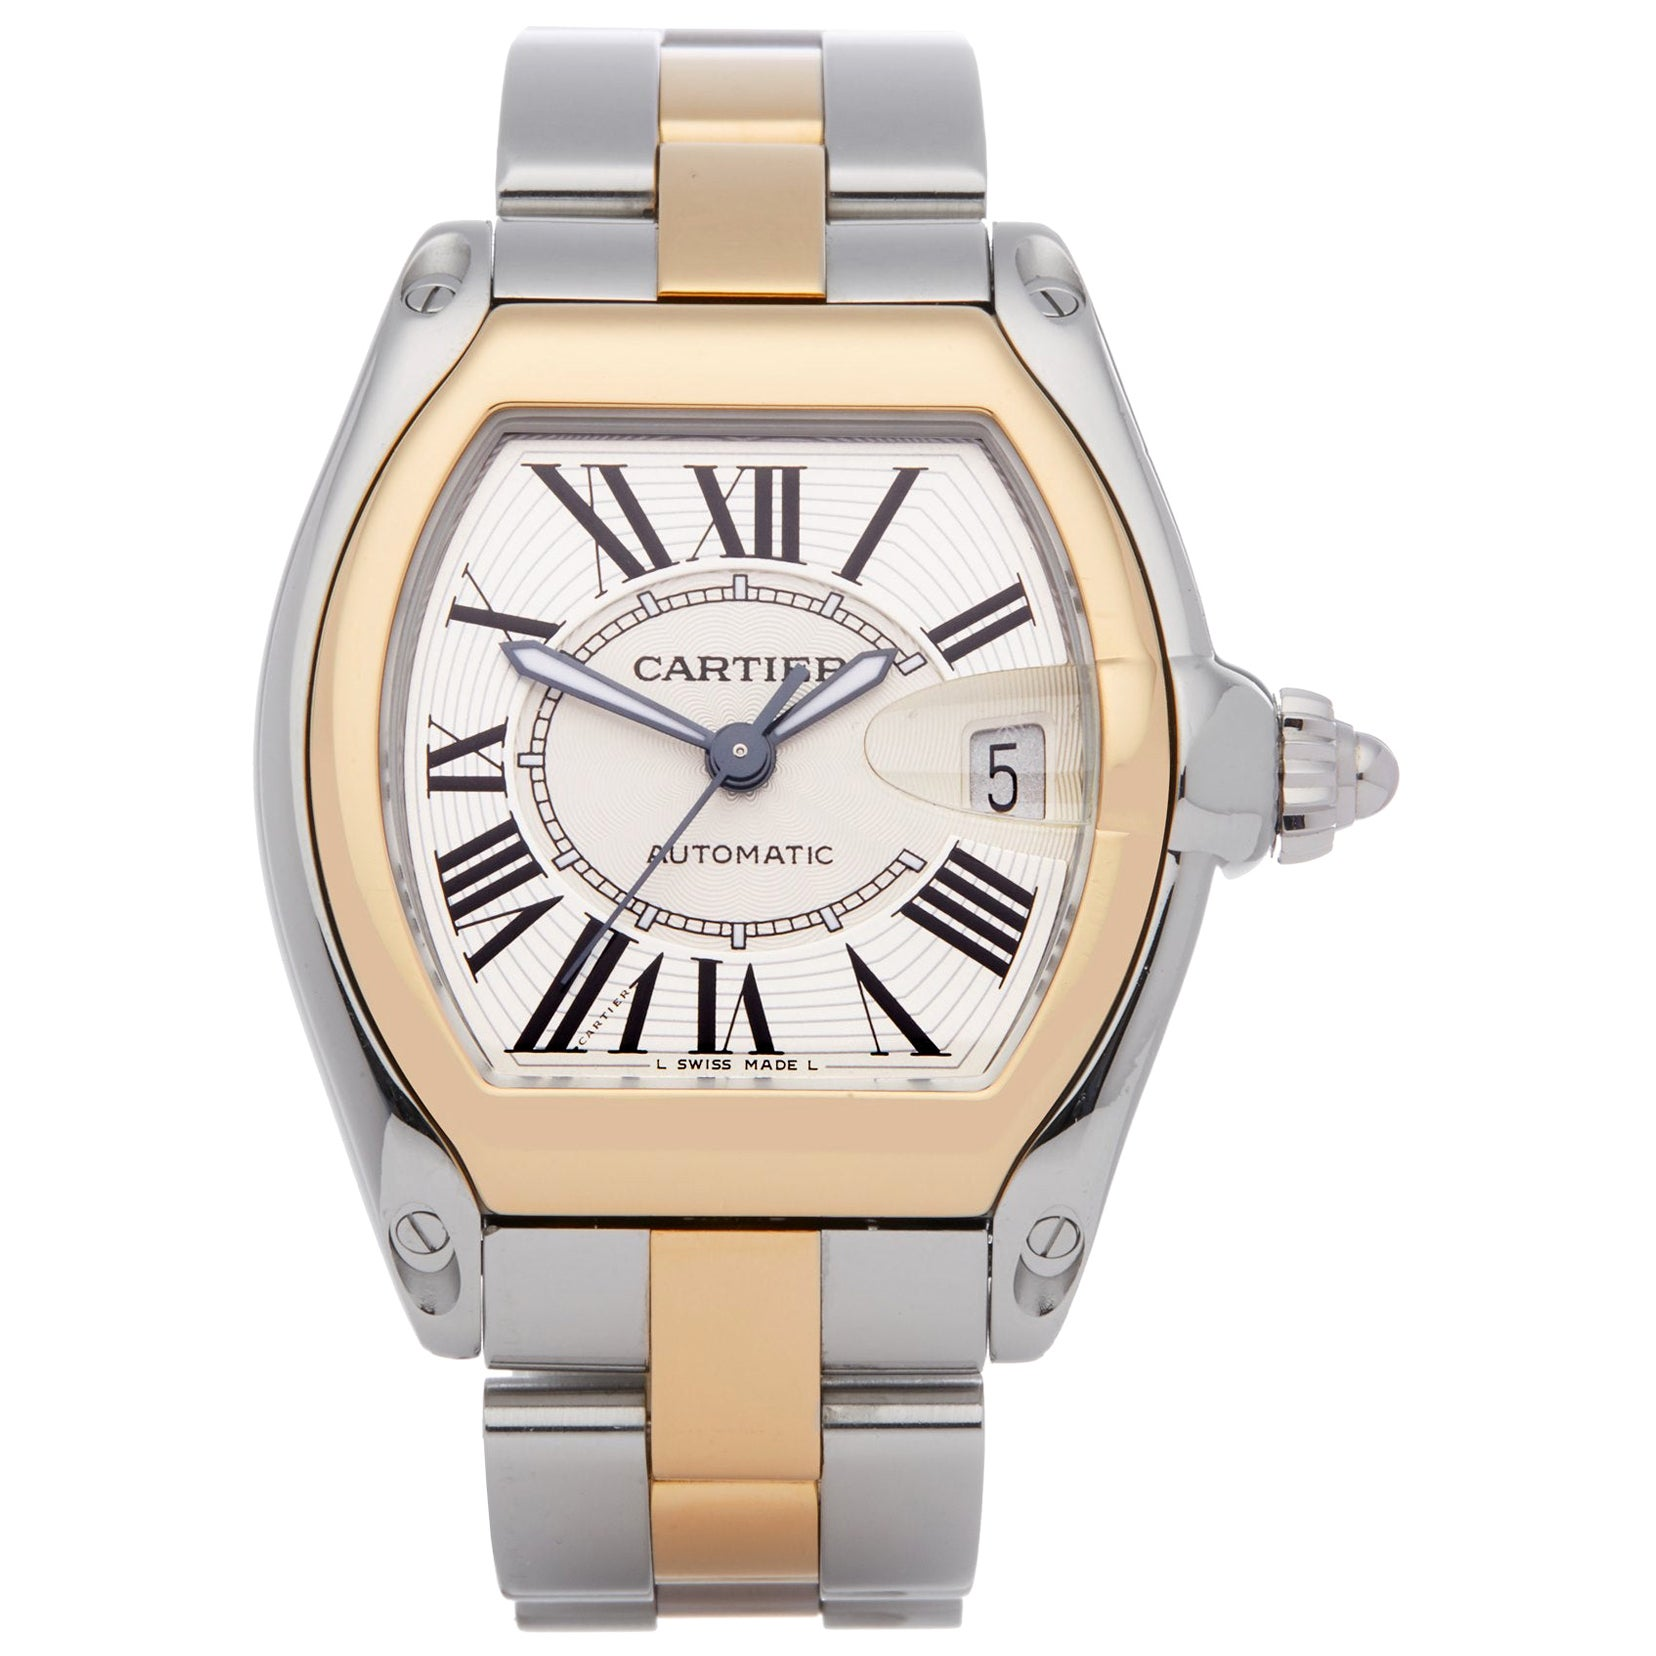 Cartier Roadster 2510 Men's Stainless Steel & Yellow Gold Large Automatic Watch